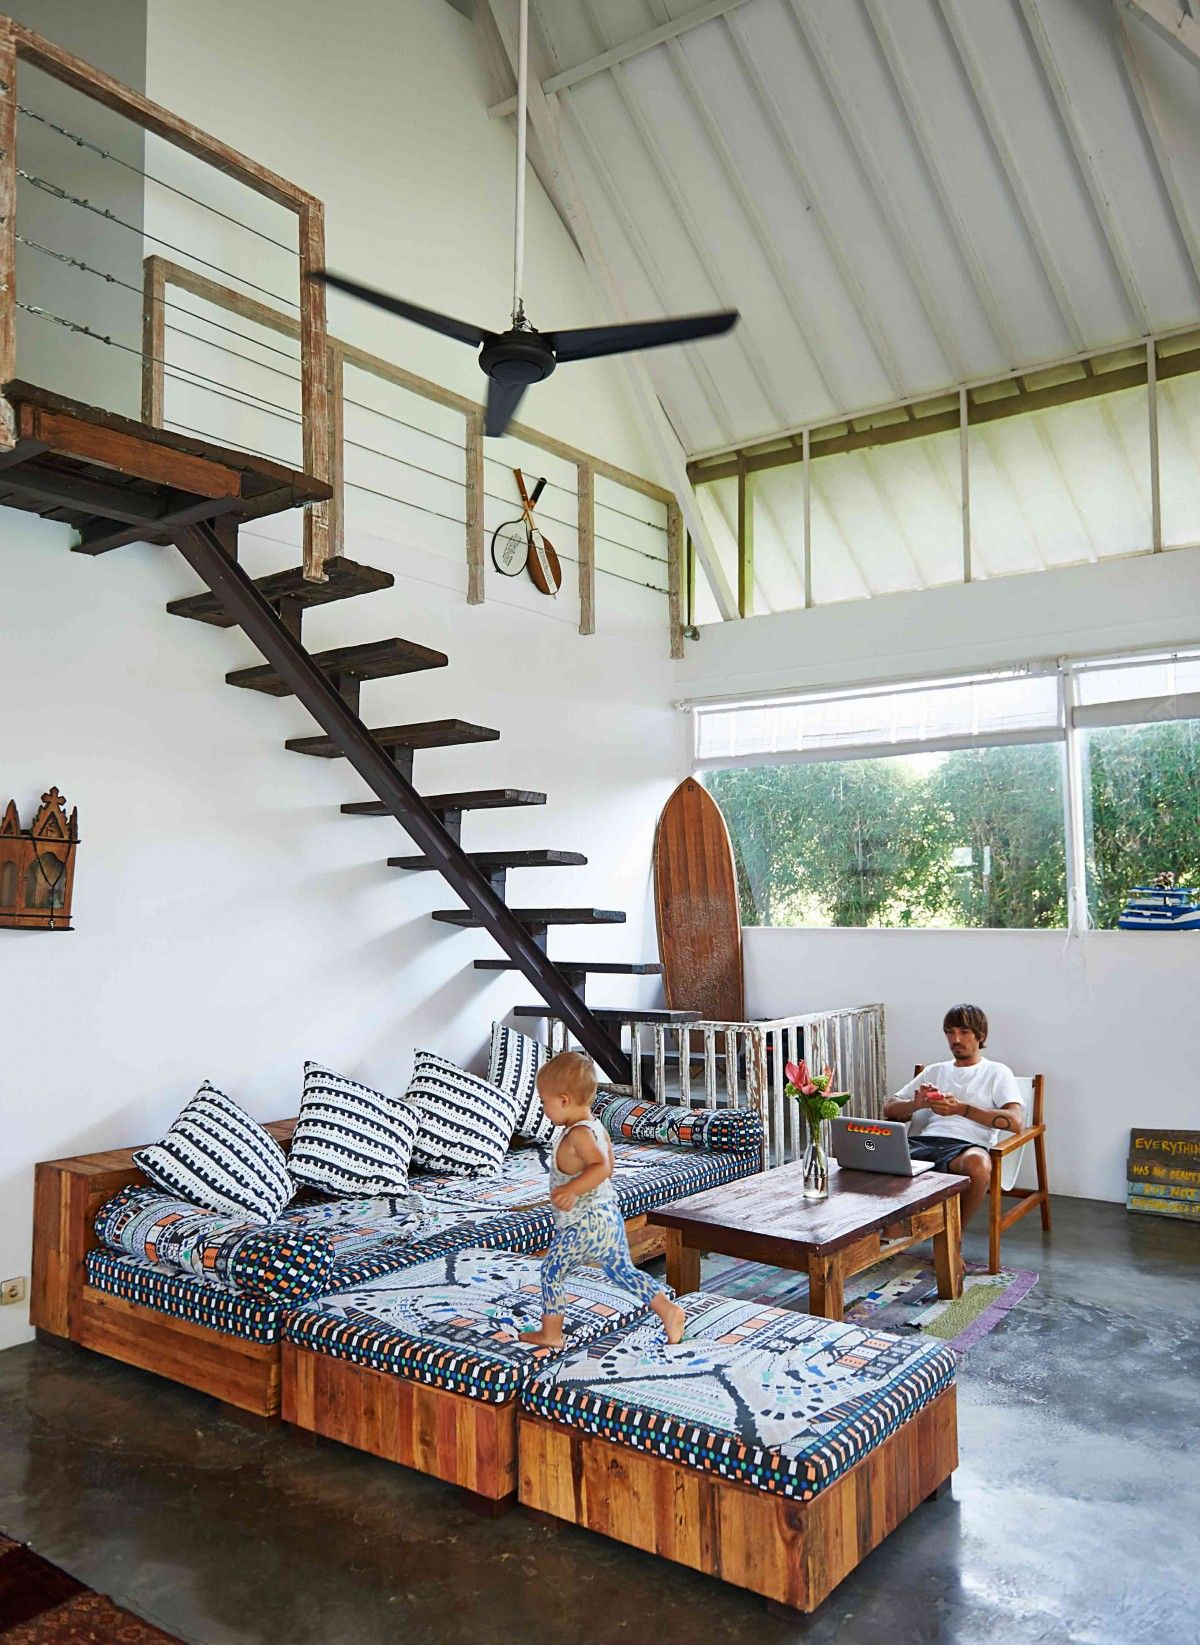 Step inside an australian fashion designers relaxed balinese villa via mydomaineau